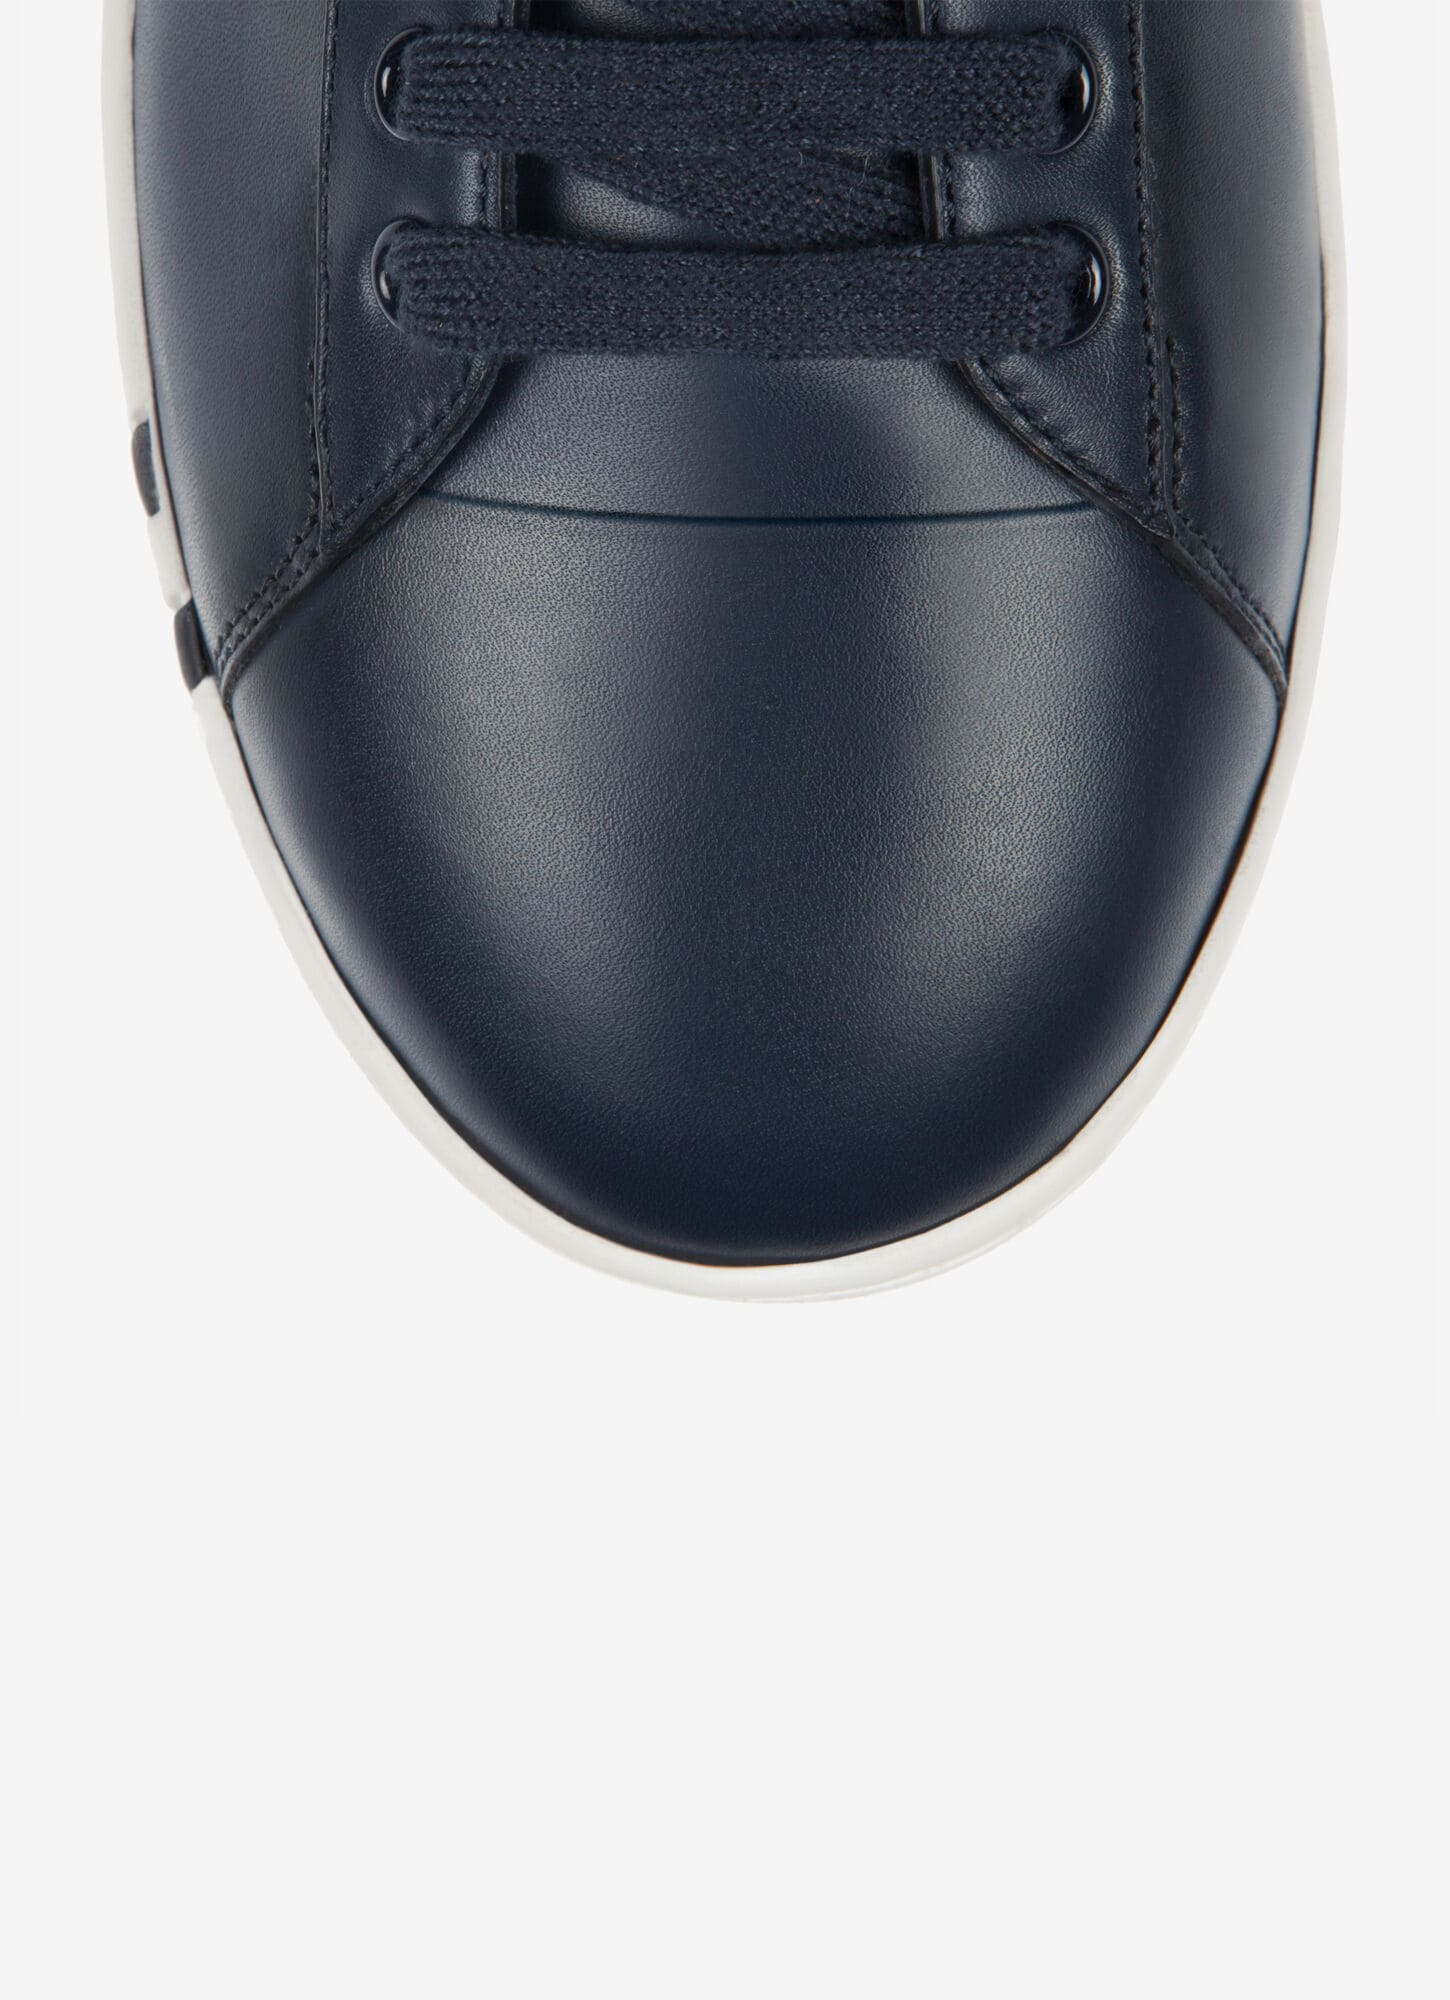 ASHER| Men's sneakers | Bally Shoes